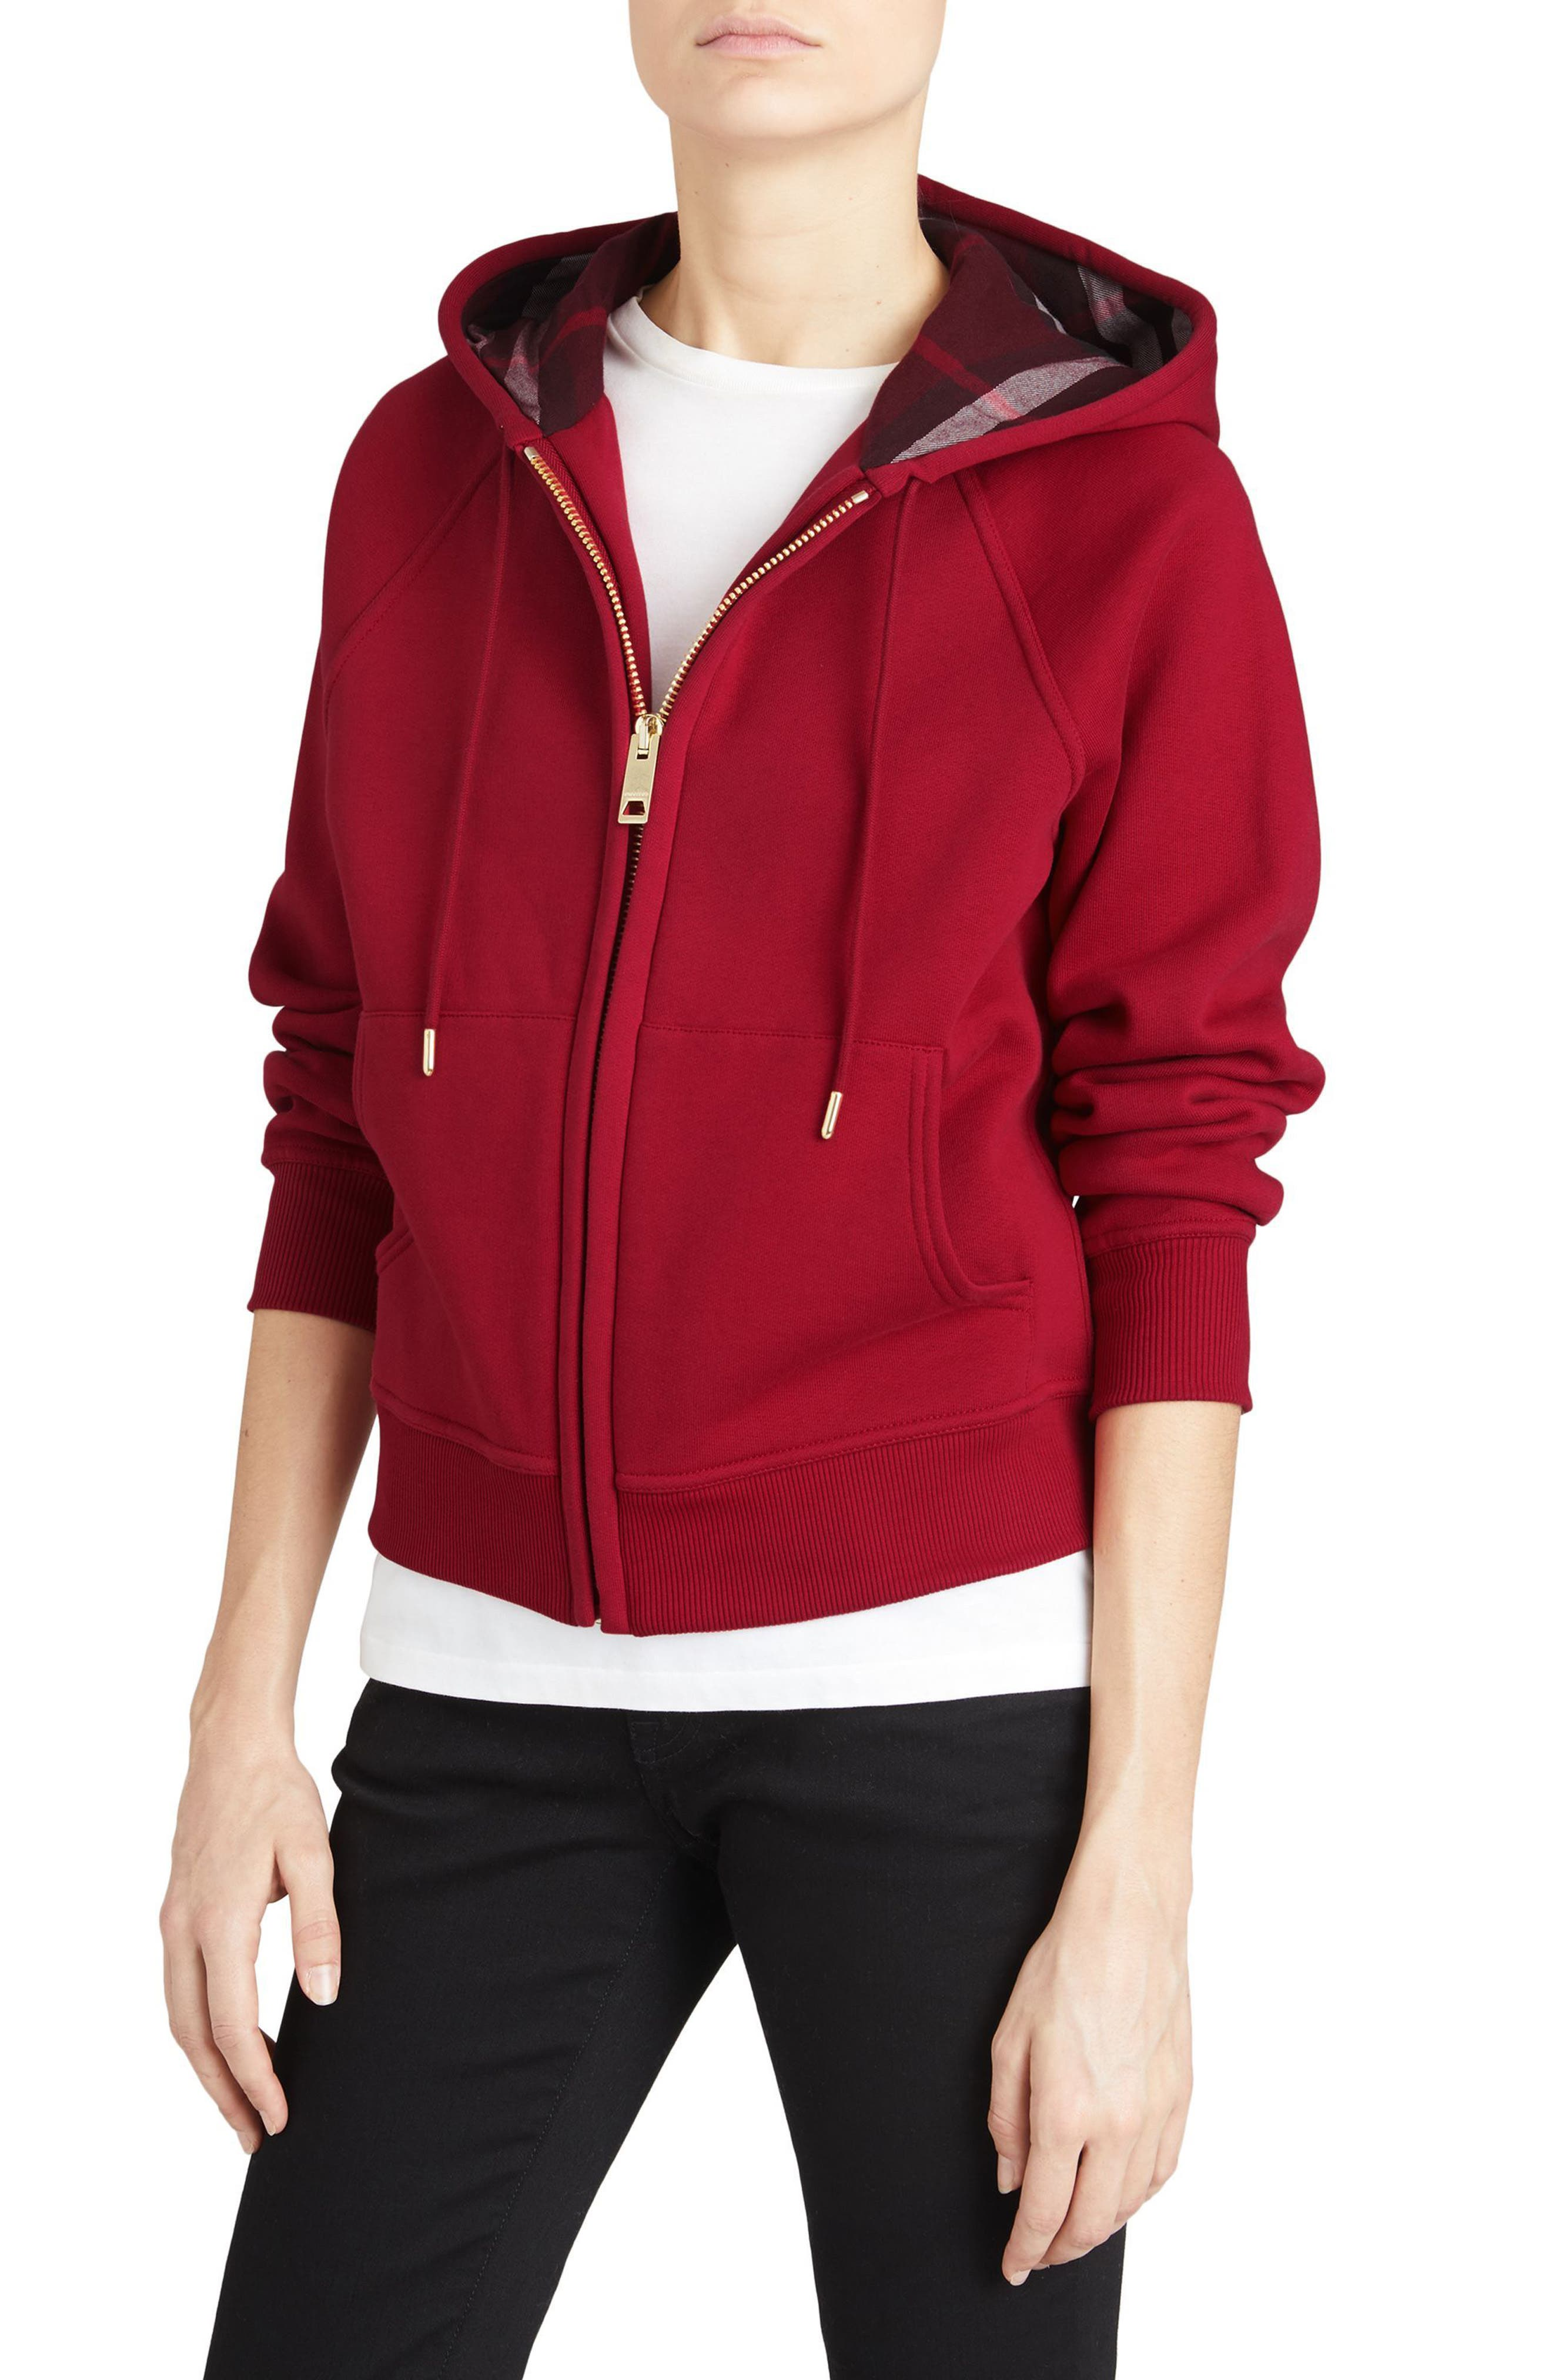 BURBERRY, Check Print Hoodie, Main thumbnail 1, color, PARADE RED